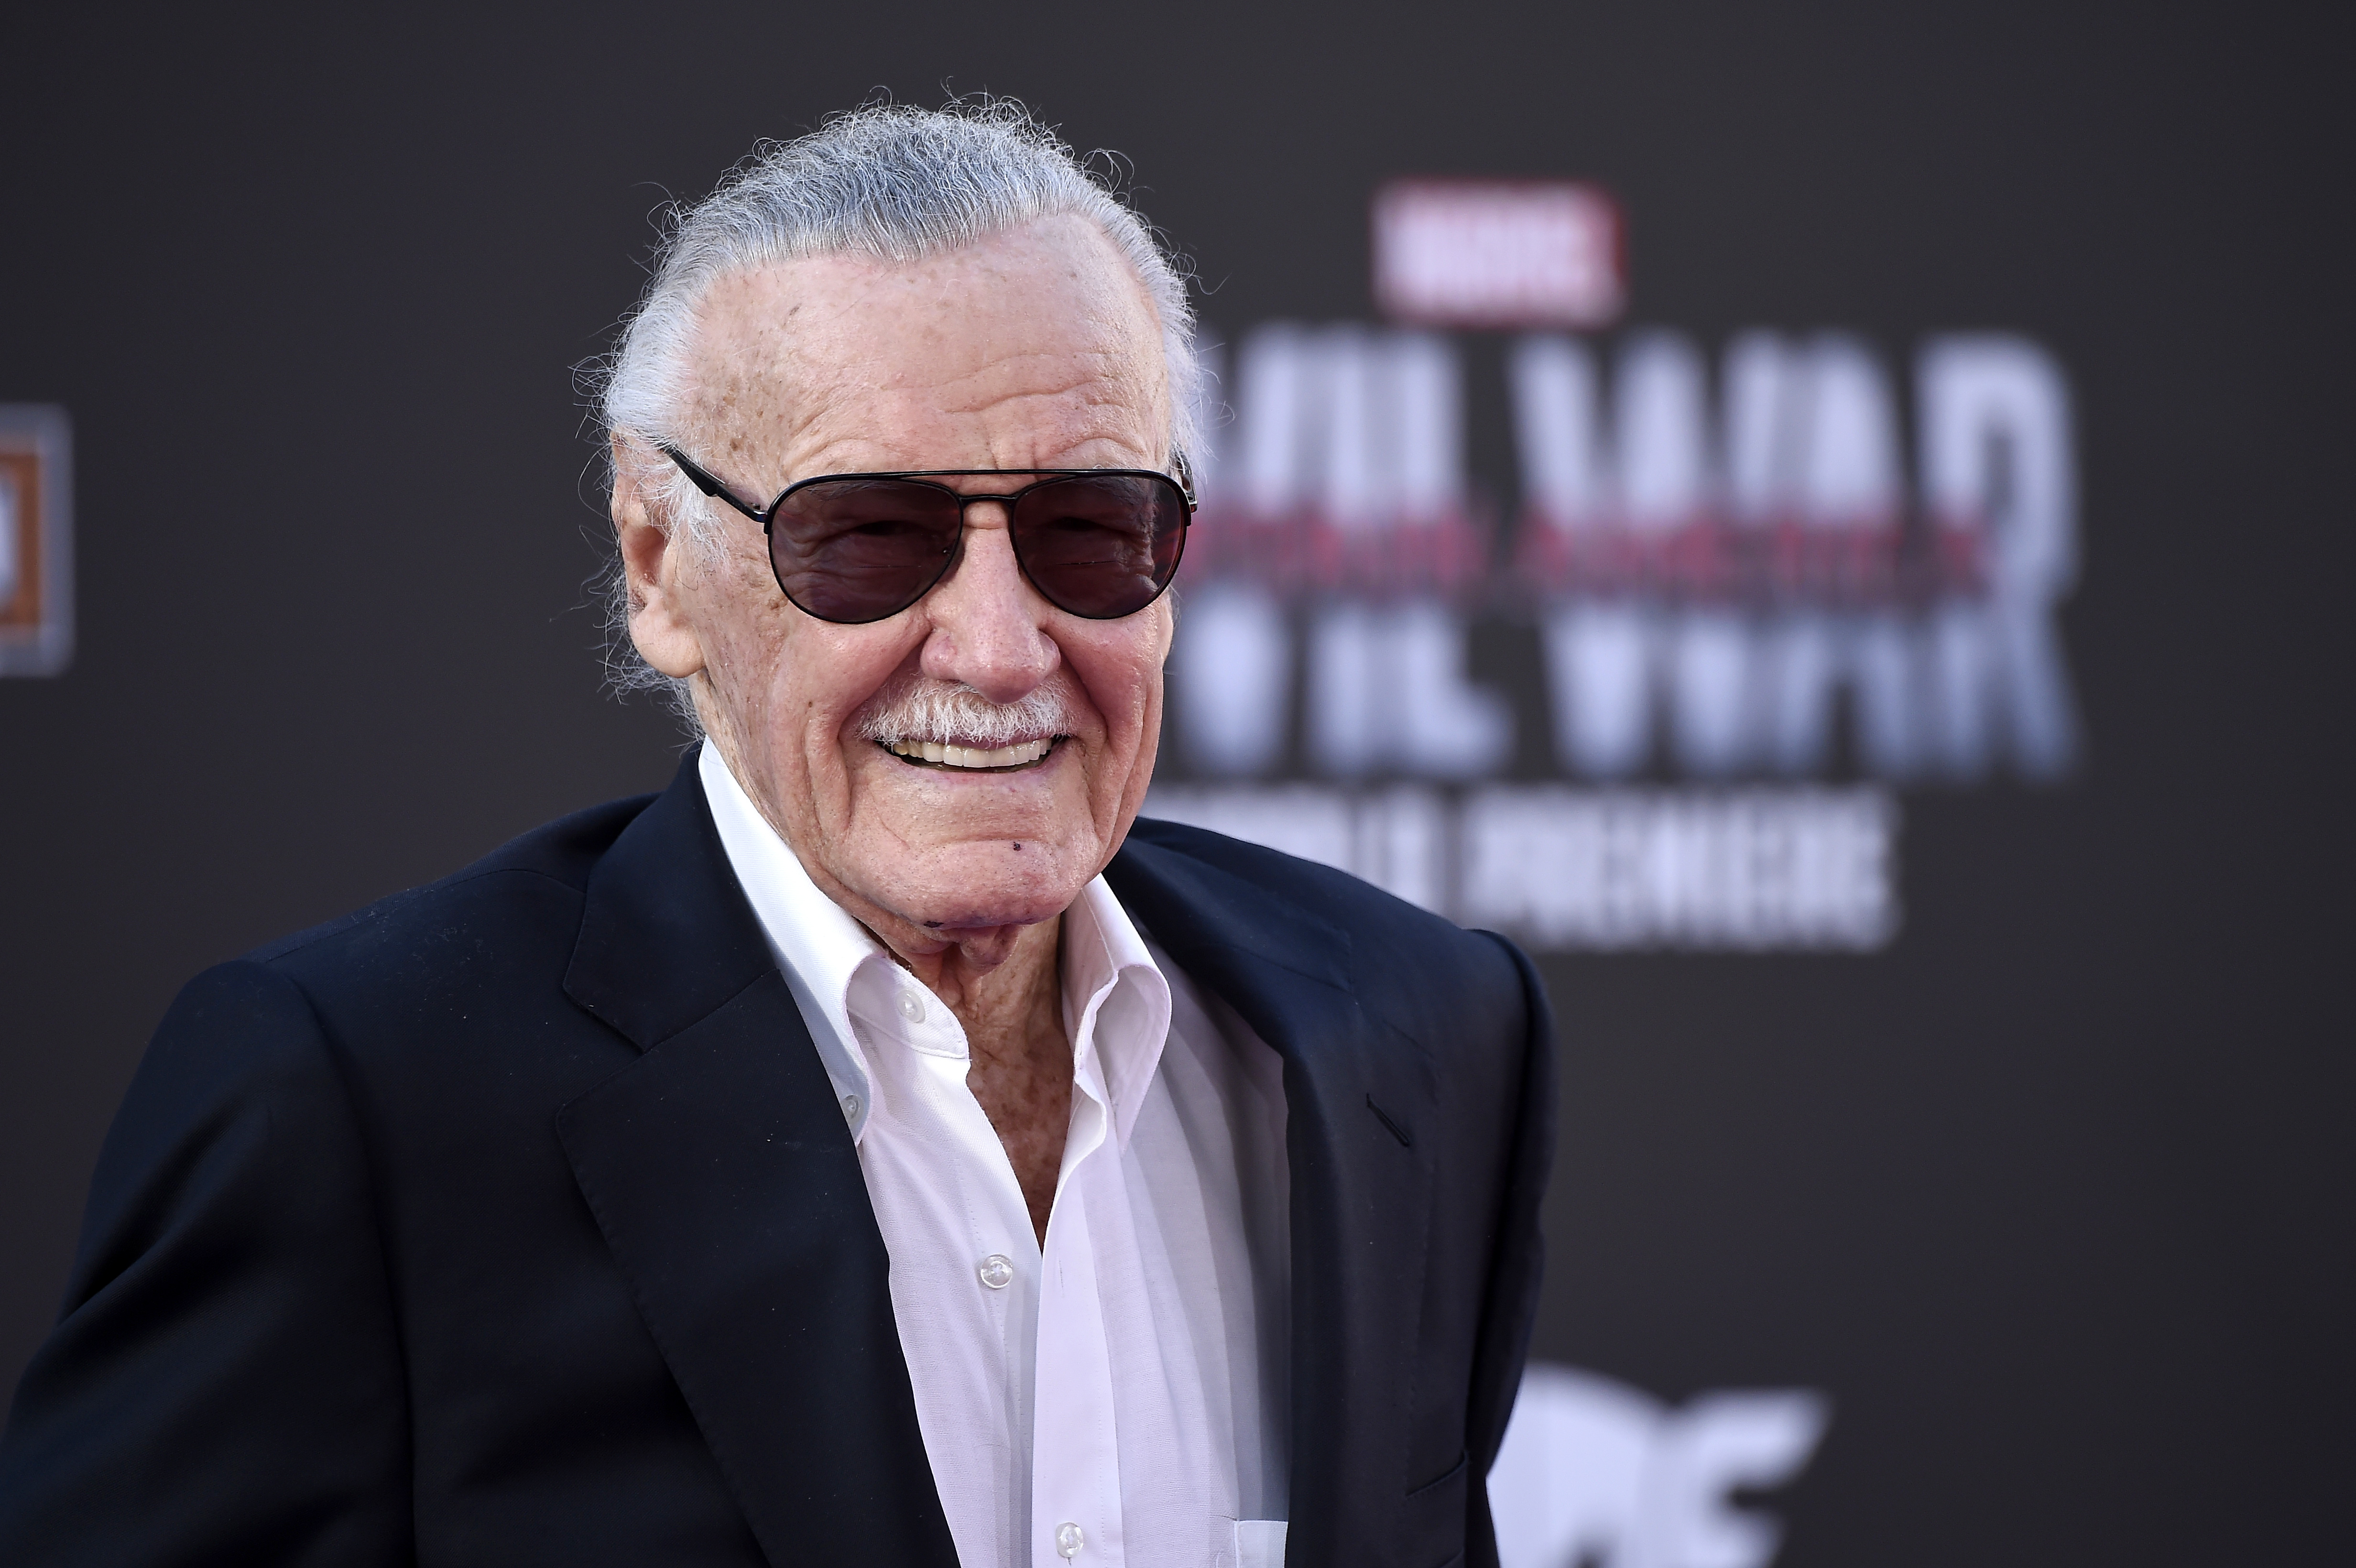 Stan Lee attends the premiere of Marvel's 'Captain America: Civil War' on April 12, 2016 in Los Angeles, Califor.